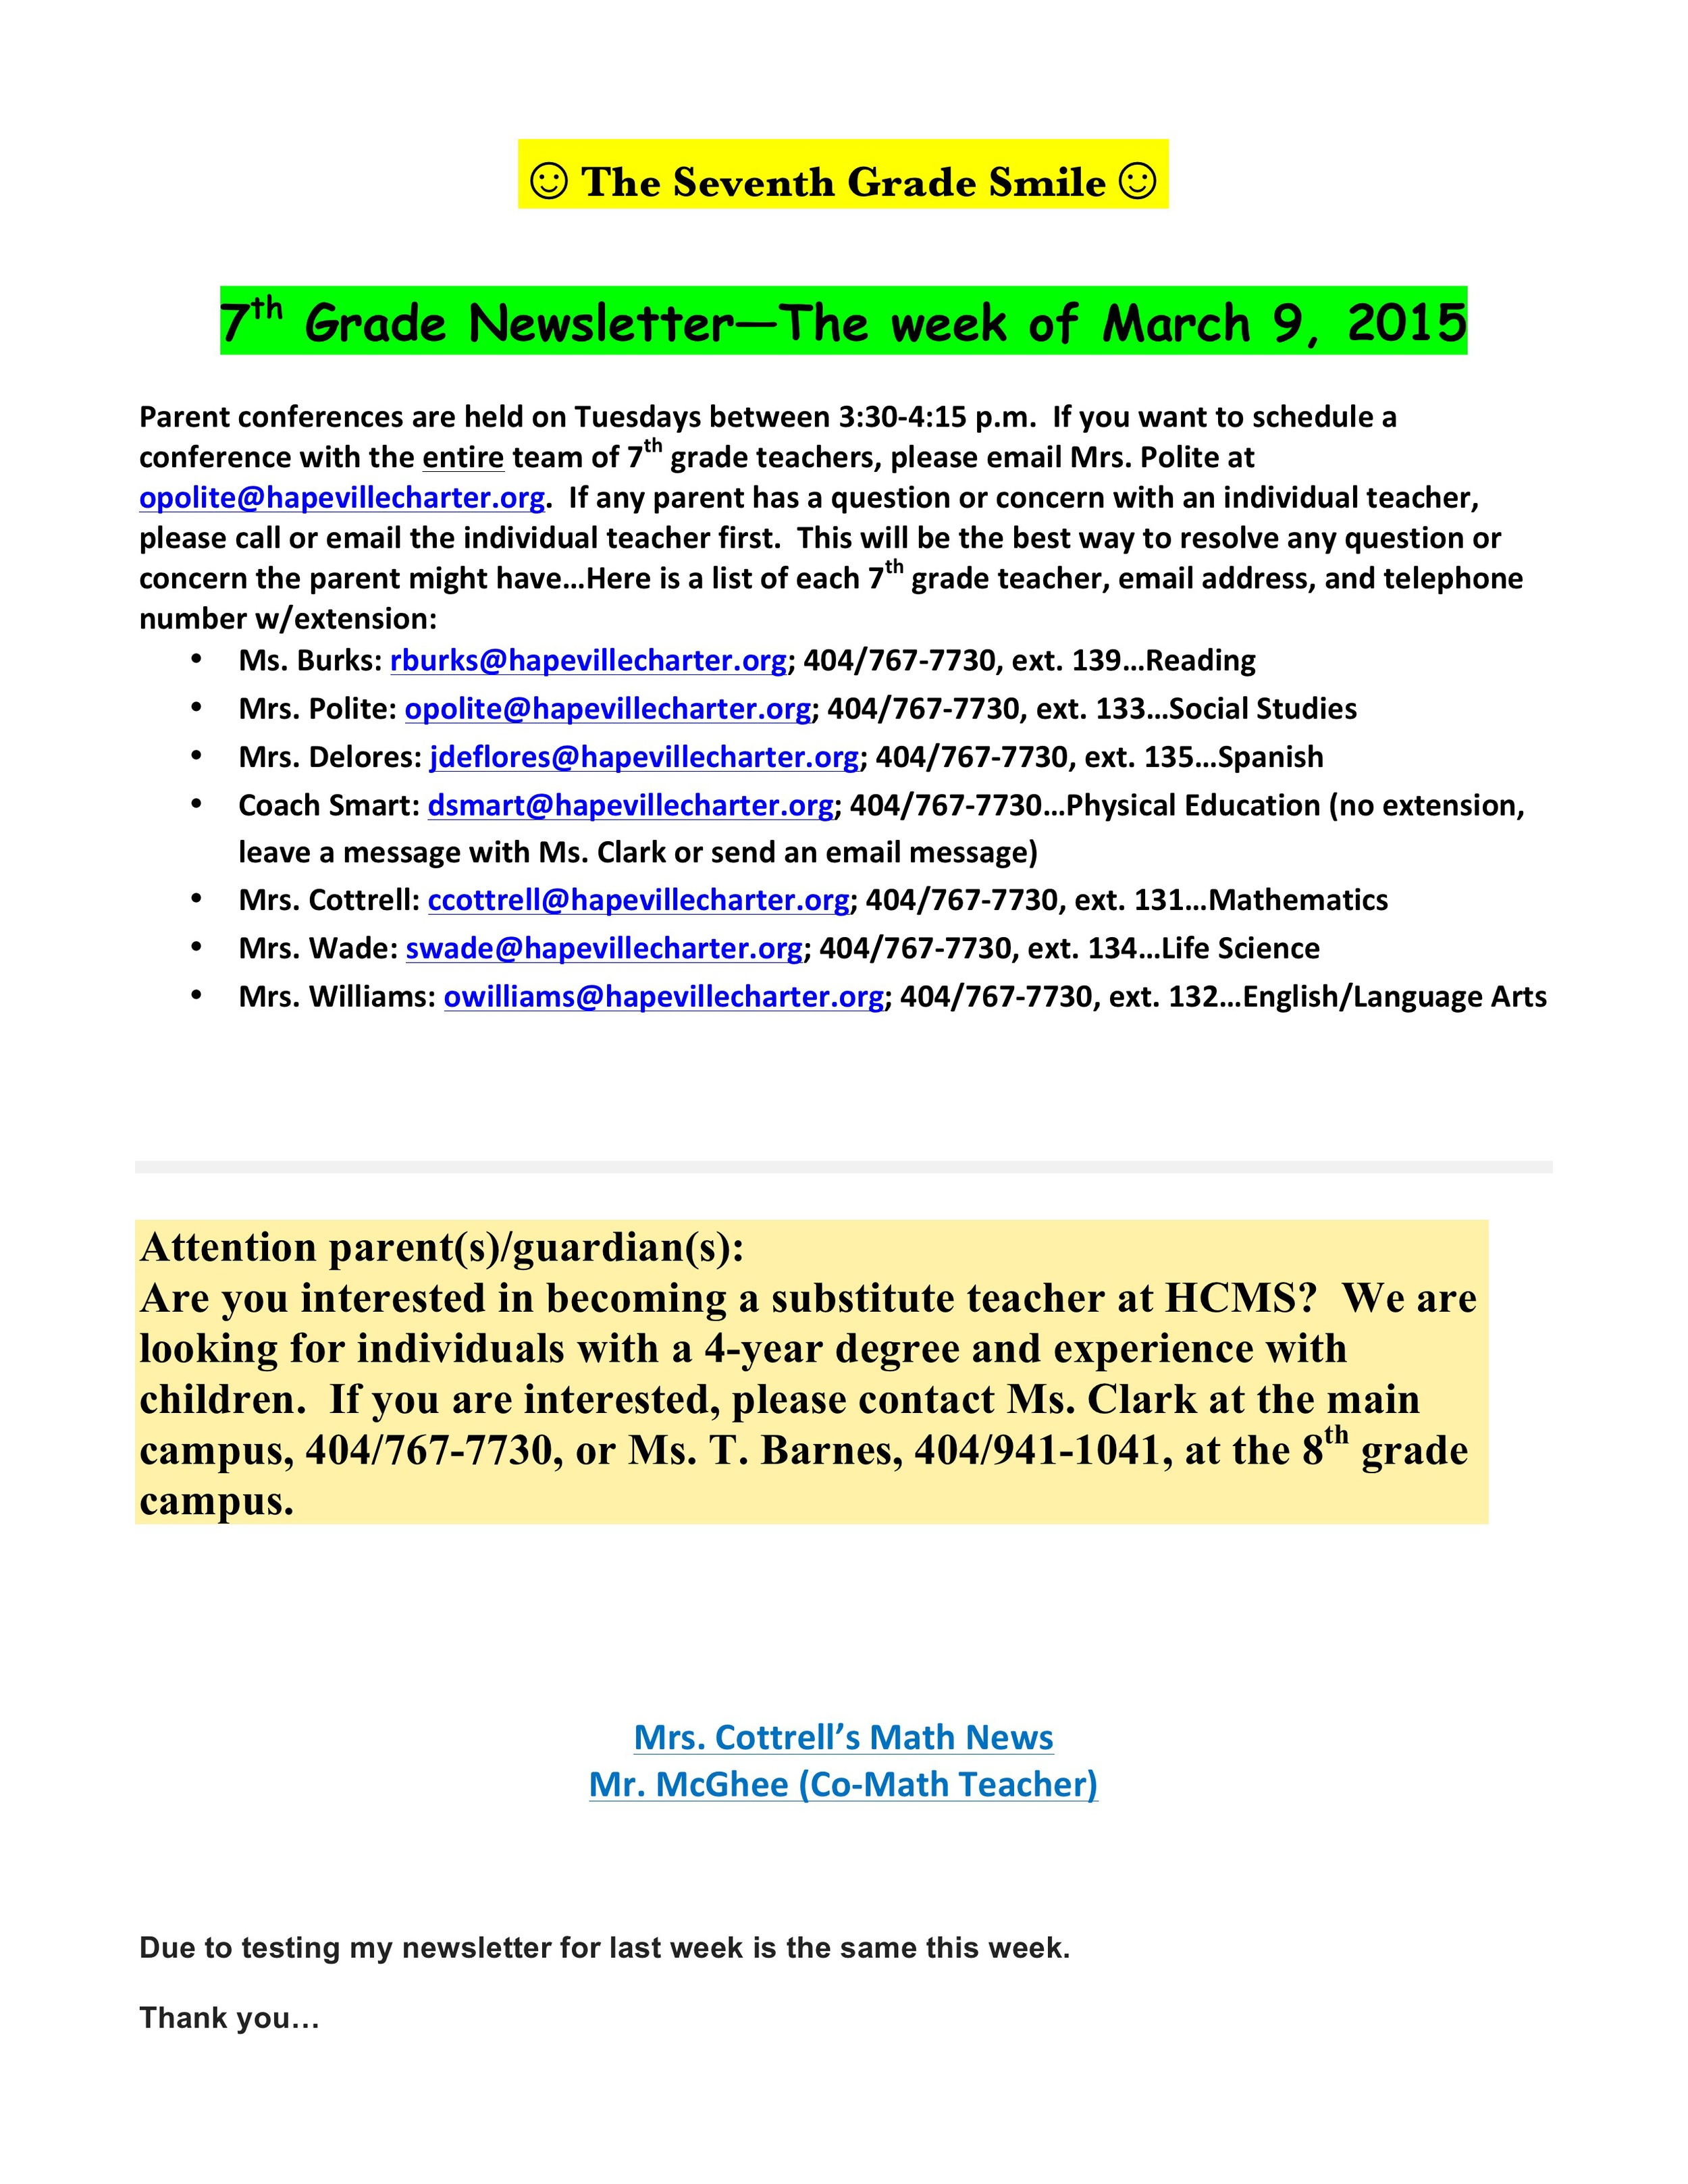 Newsletter Image7th grade march 9 - 13.jpeg